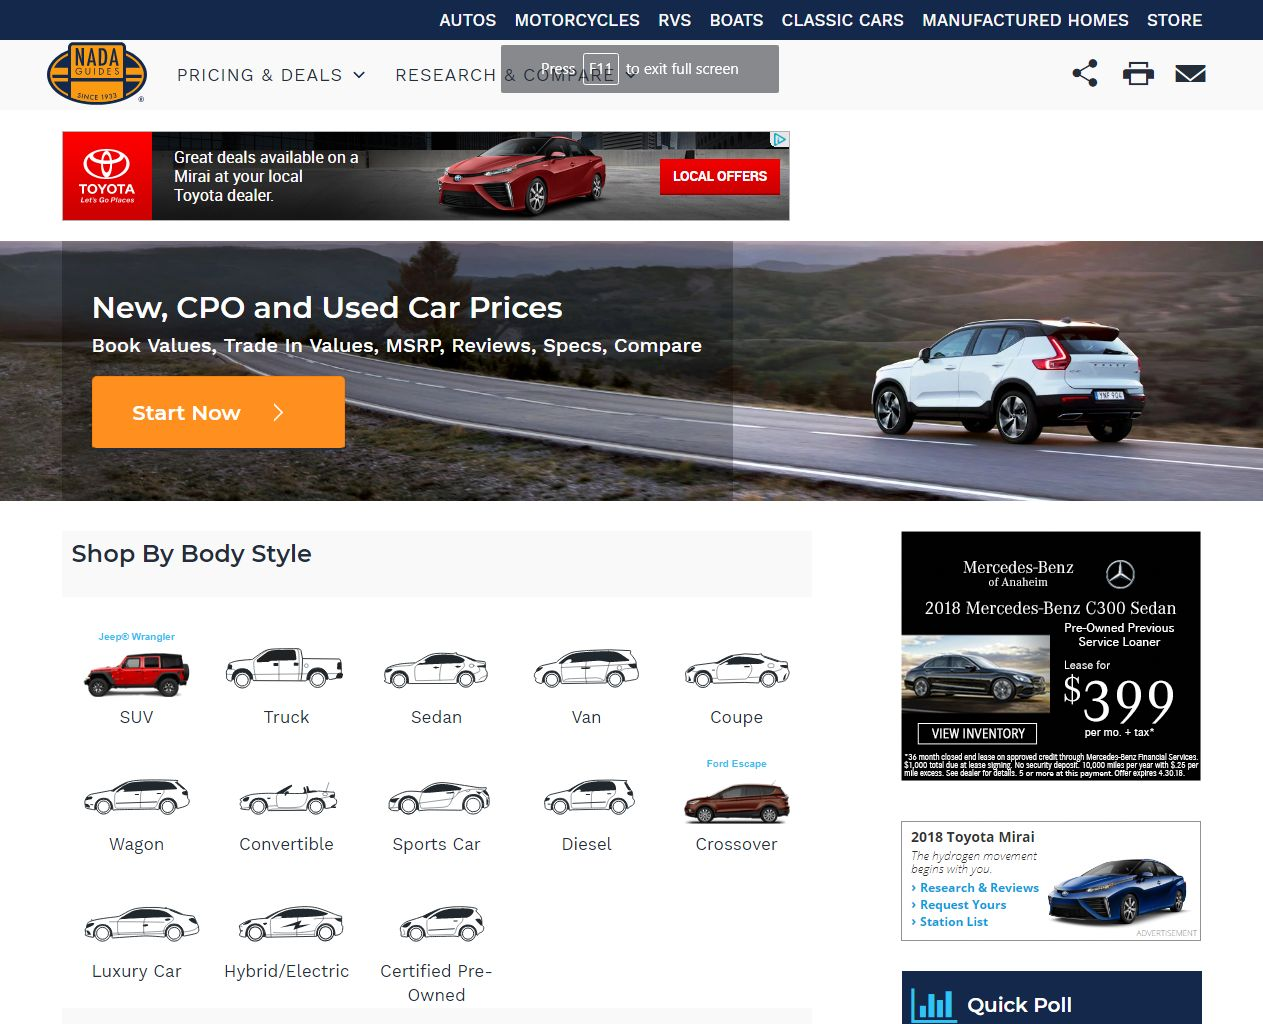 J.D. Power Integrates Car Ratings Into NADAguides.com